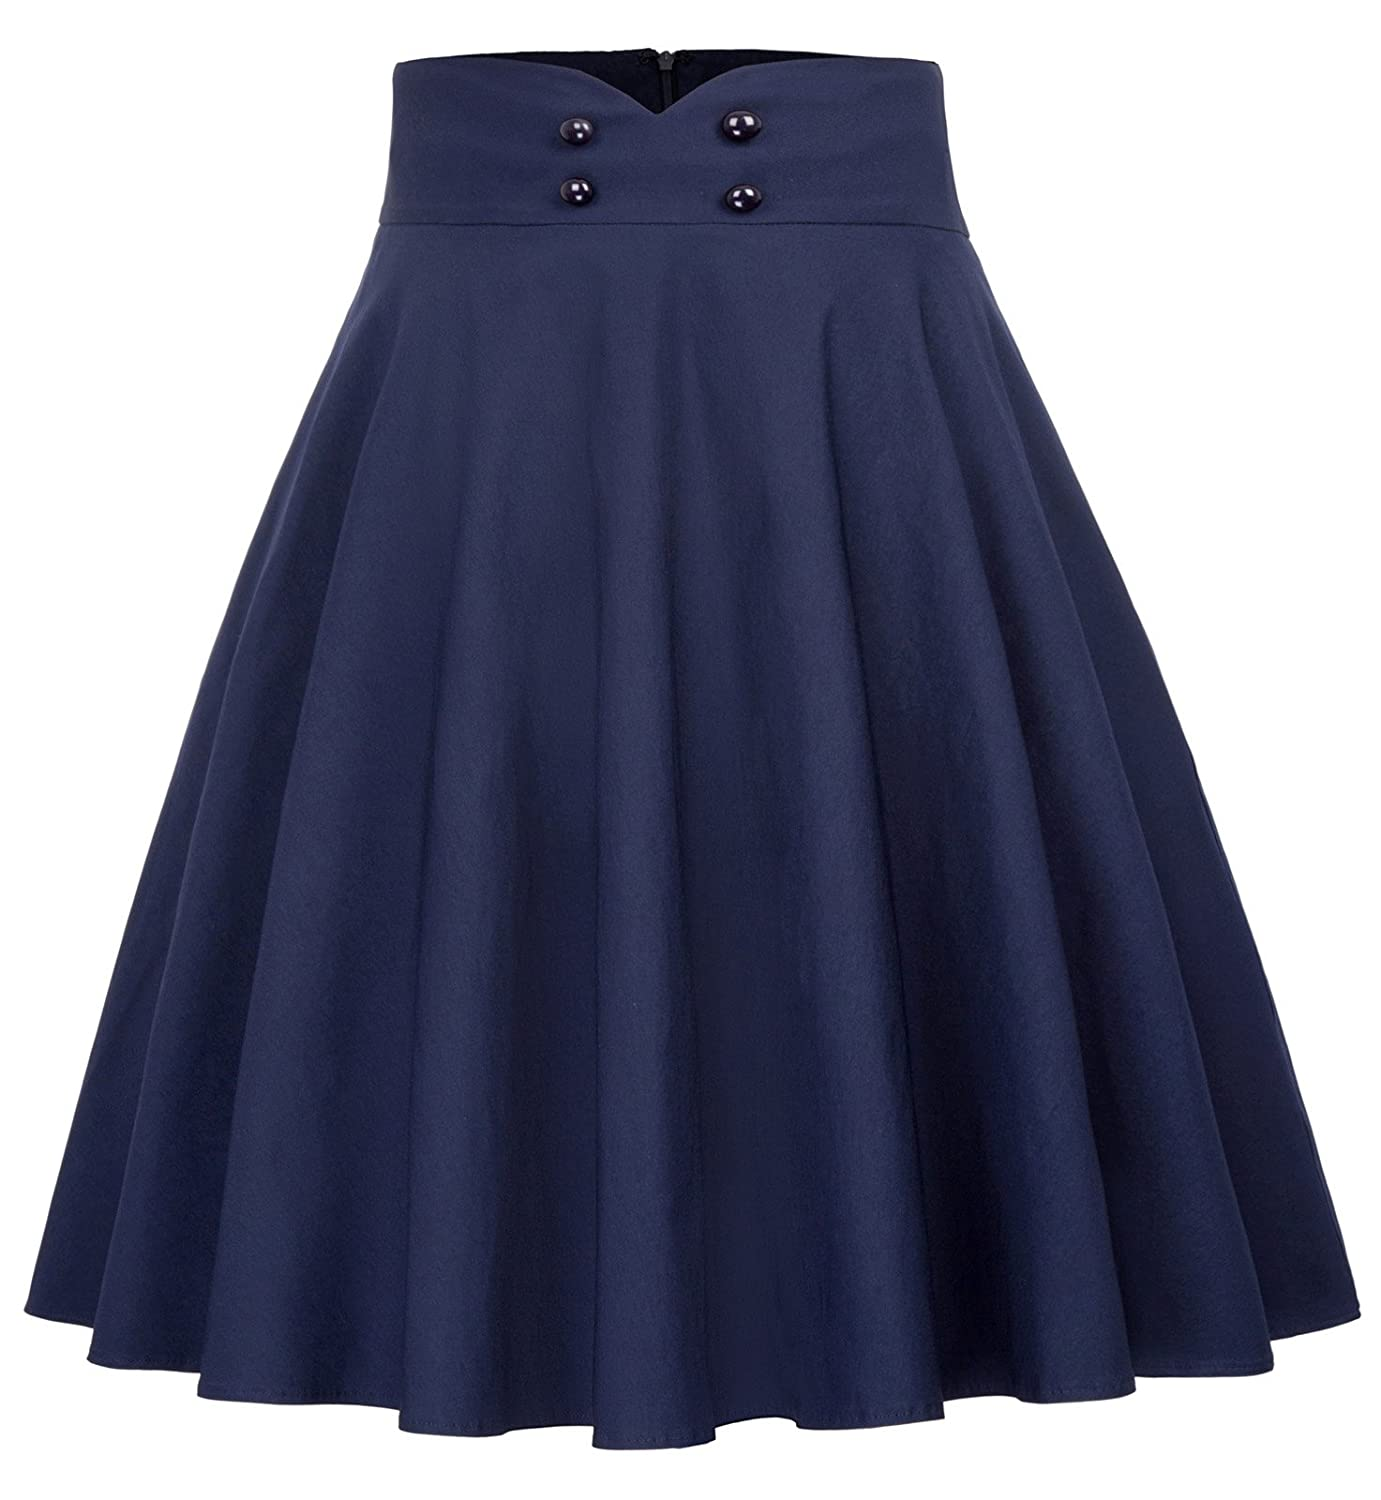 Belle Poque 50s Style Pleated Swing Skirt for Tea Party Cocktail with Pockets GF560